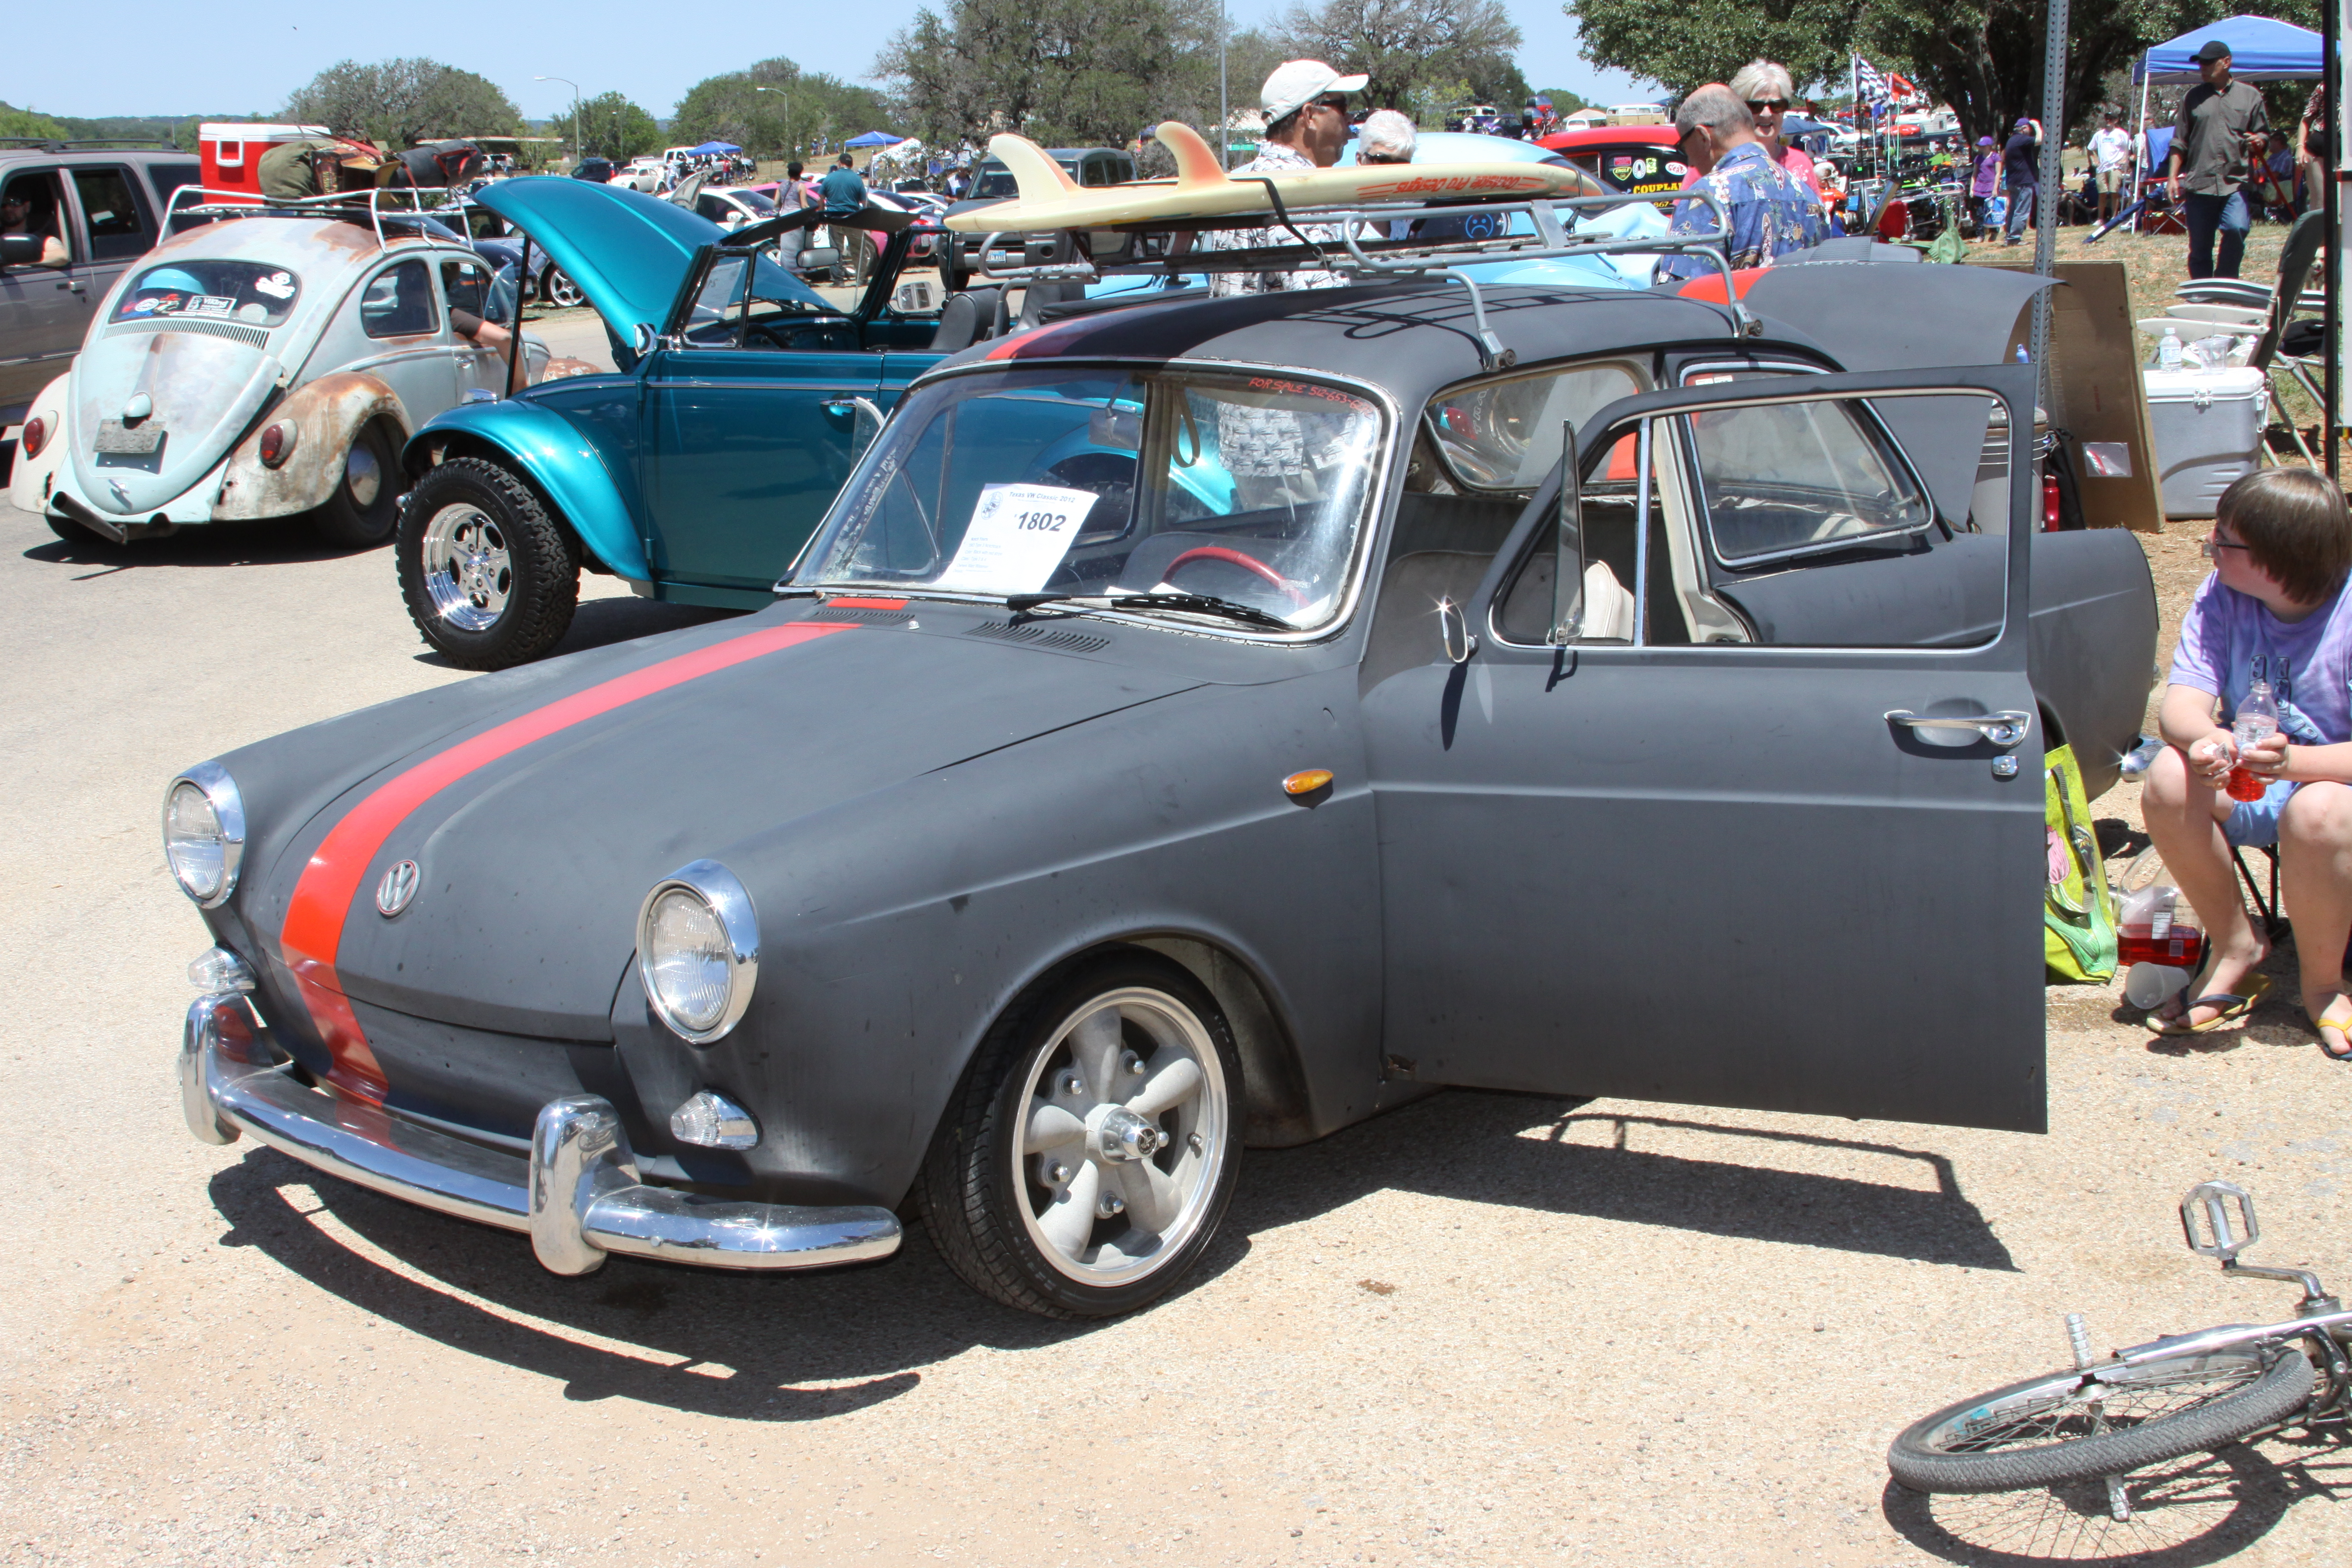 Notch Yours 1802 Texas Vw Classic